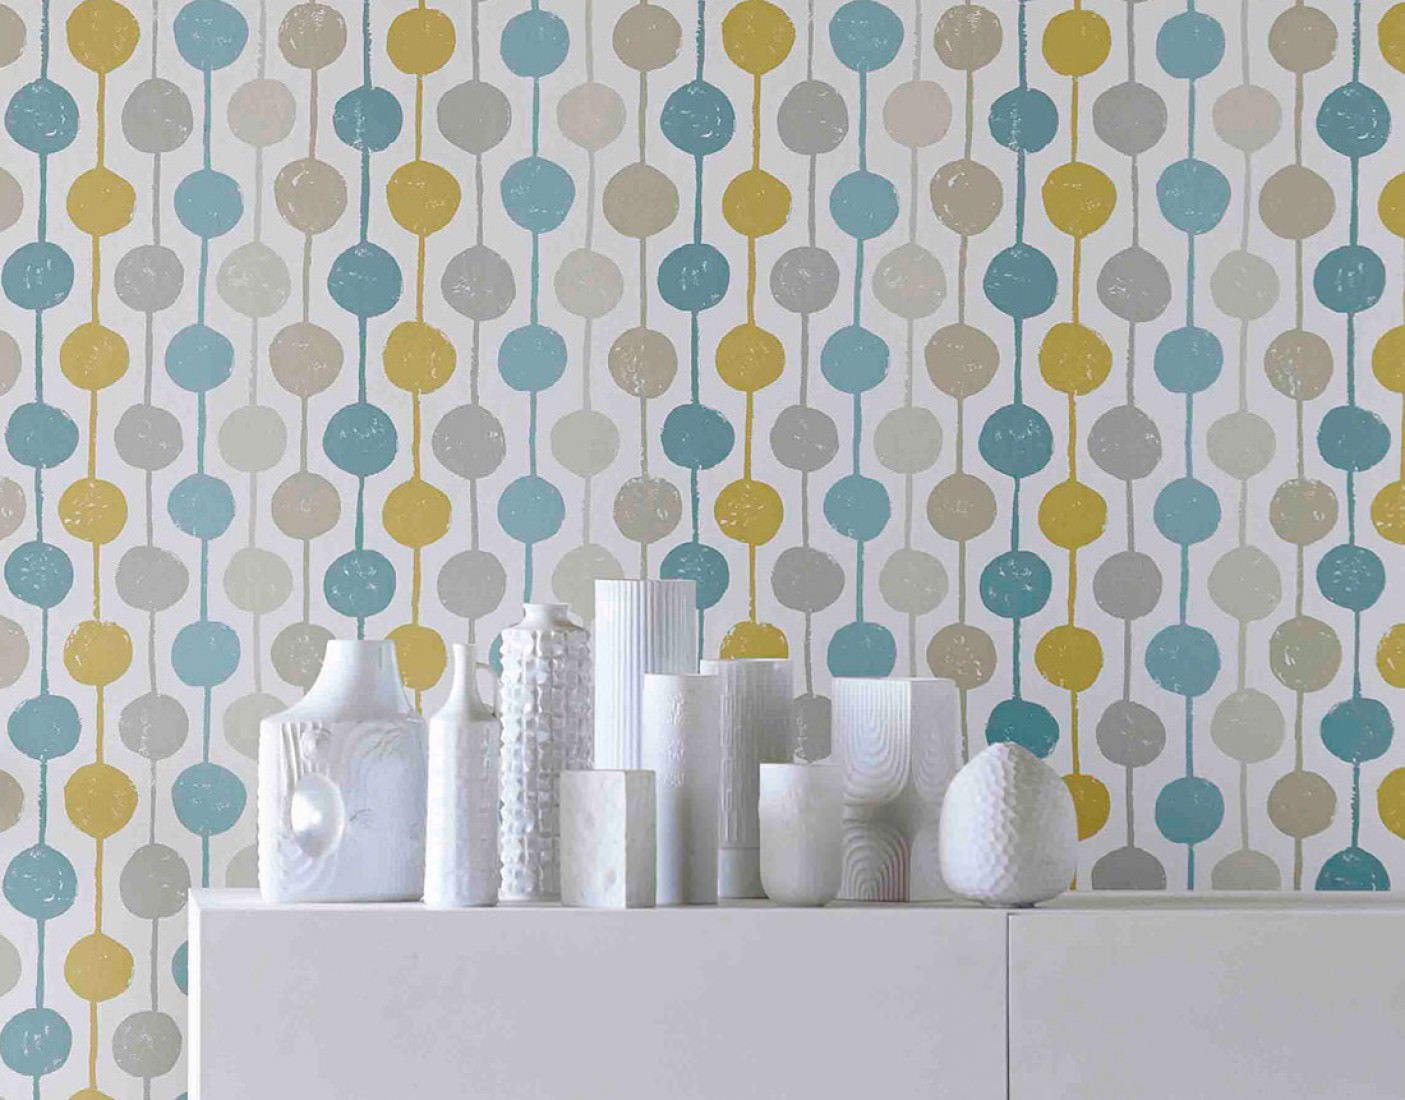 Wallpaper almeda cream beige mint turquoise ochre for Parati anni 70